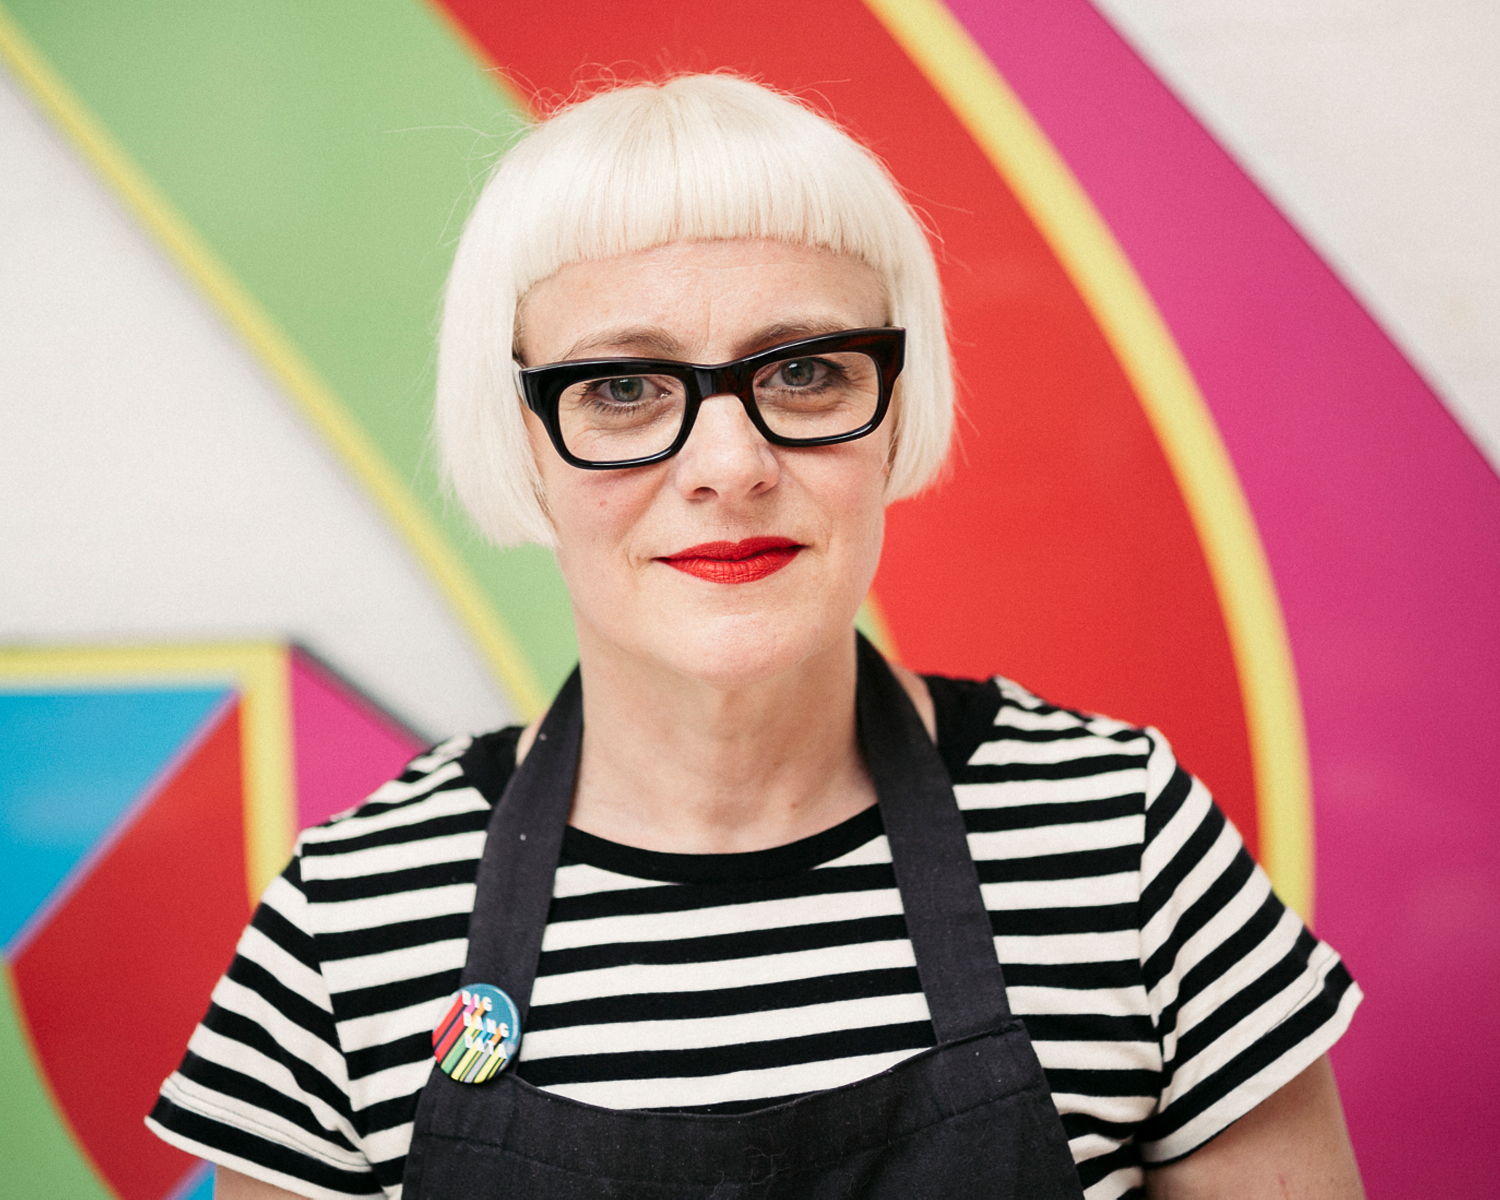 portrait photographer Tim Cole shoots Morag Myerscough in her studio